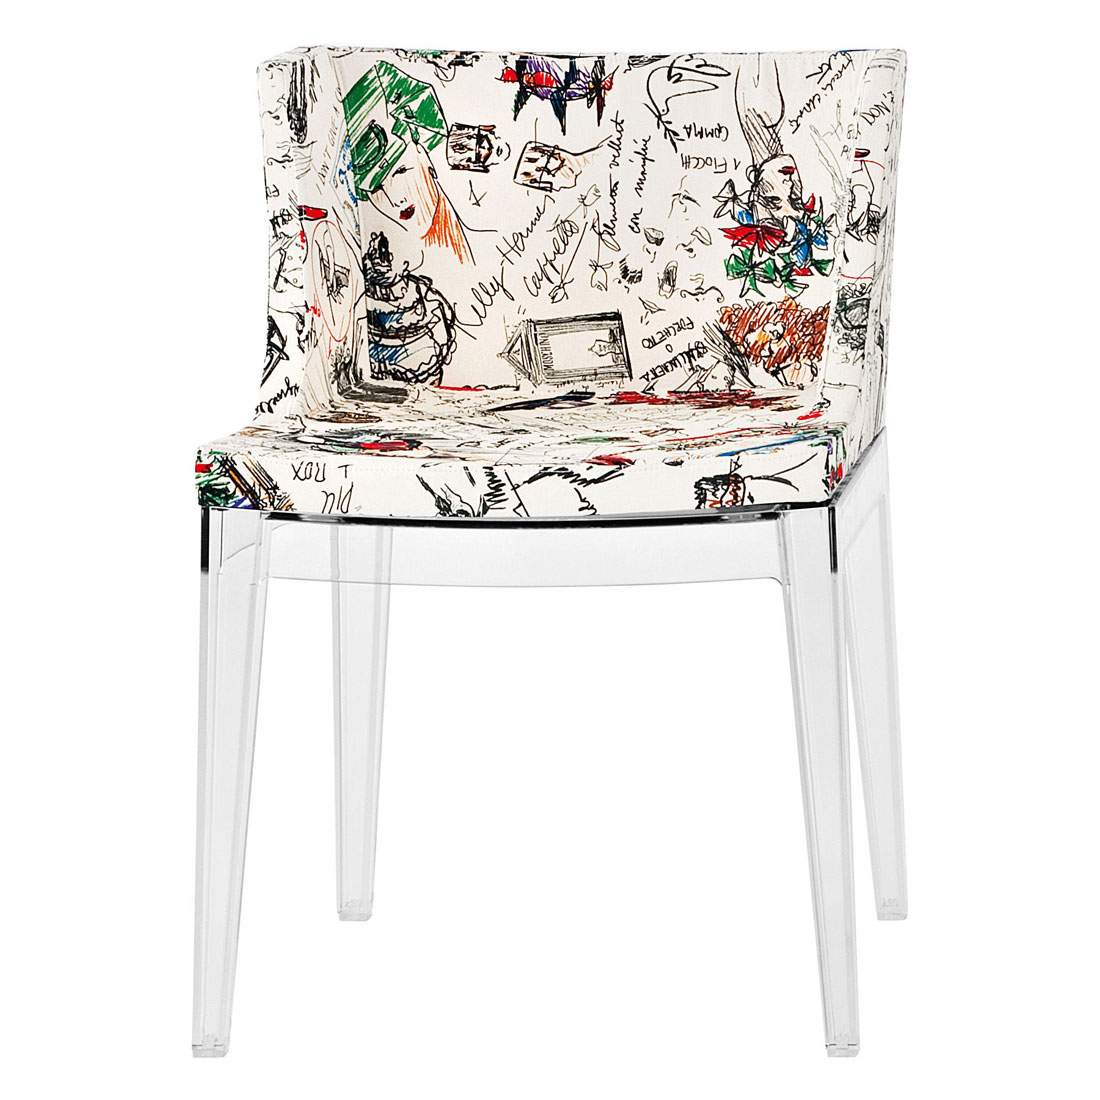 buy online kartell mademoiselle moschino sketches chair